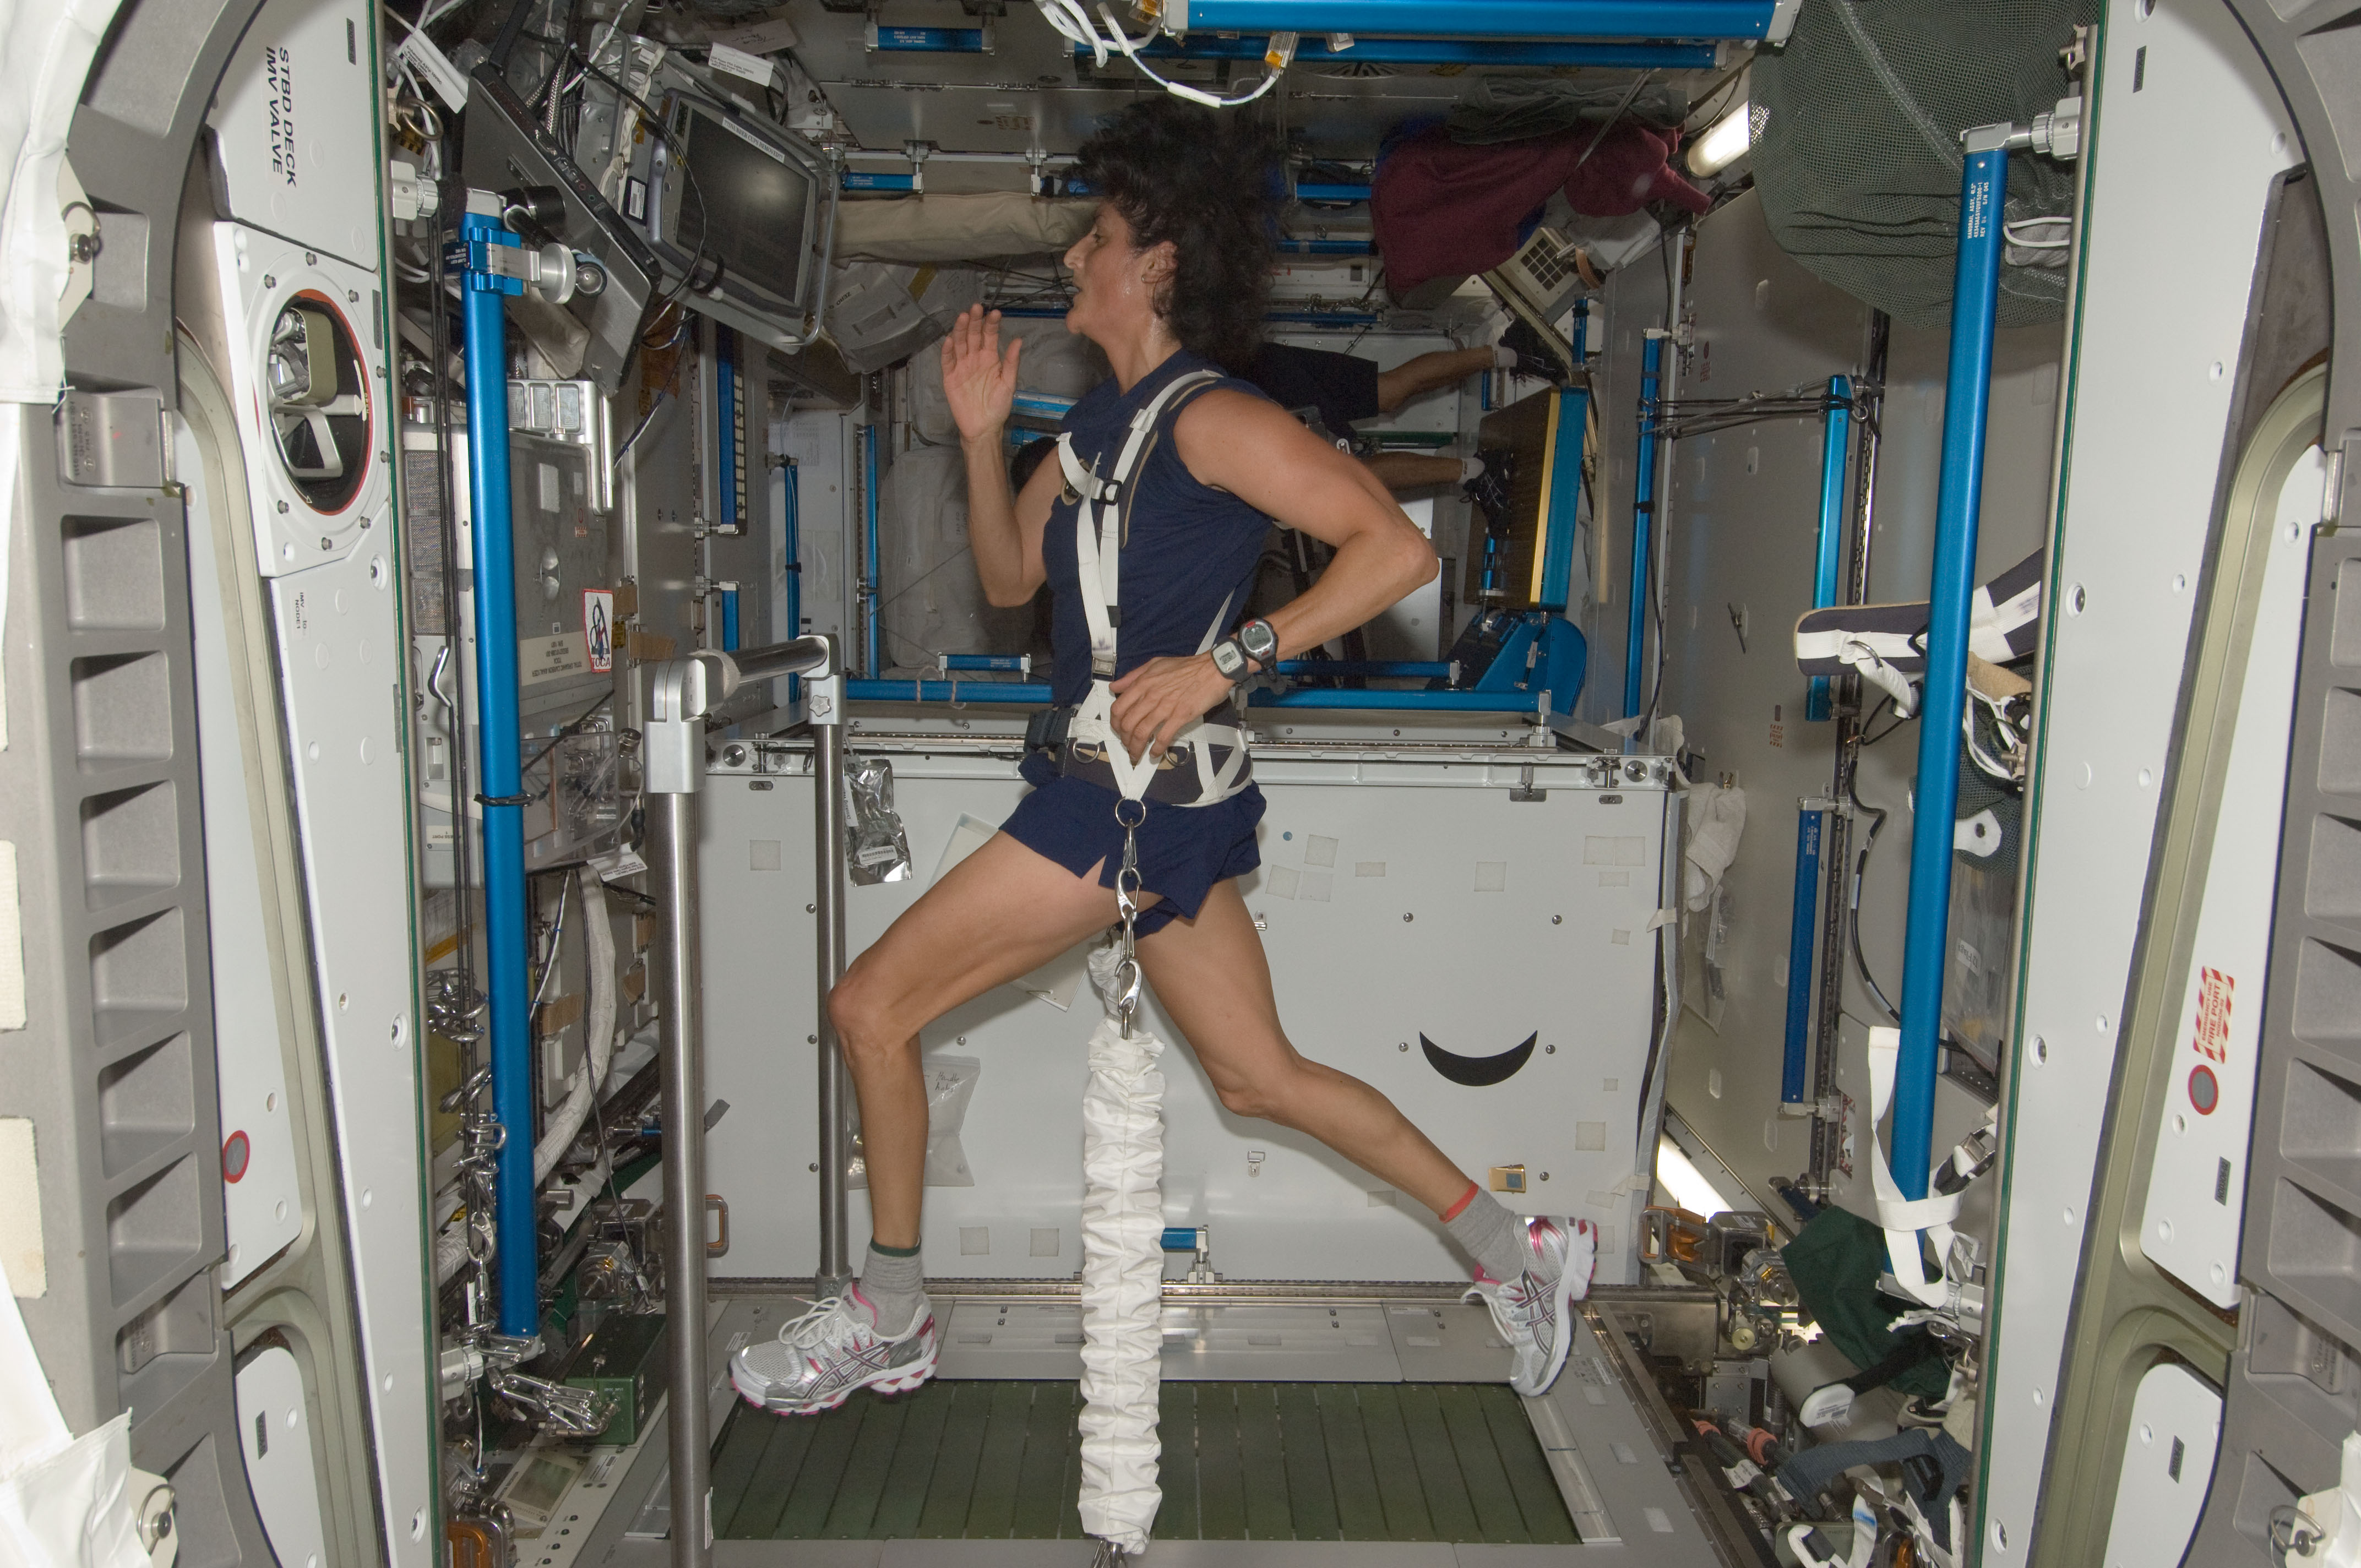 """Astronaut Sunita """"Sunny"""" Williams exercises aboard the ISS with the <a href=""""https://en.wikipedia.org/wiki/Treadmill_with_Vibration_Isolation_Stabilization"""">T2 treadmill</a>. (Sad spoiler: even though the treadmill is """"officially"""" named COLBERT, no one actually calls it that. It's just plain ol' """"T2."""")"""